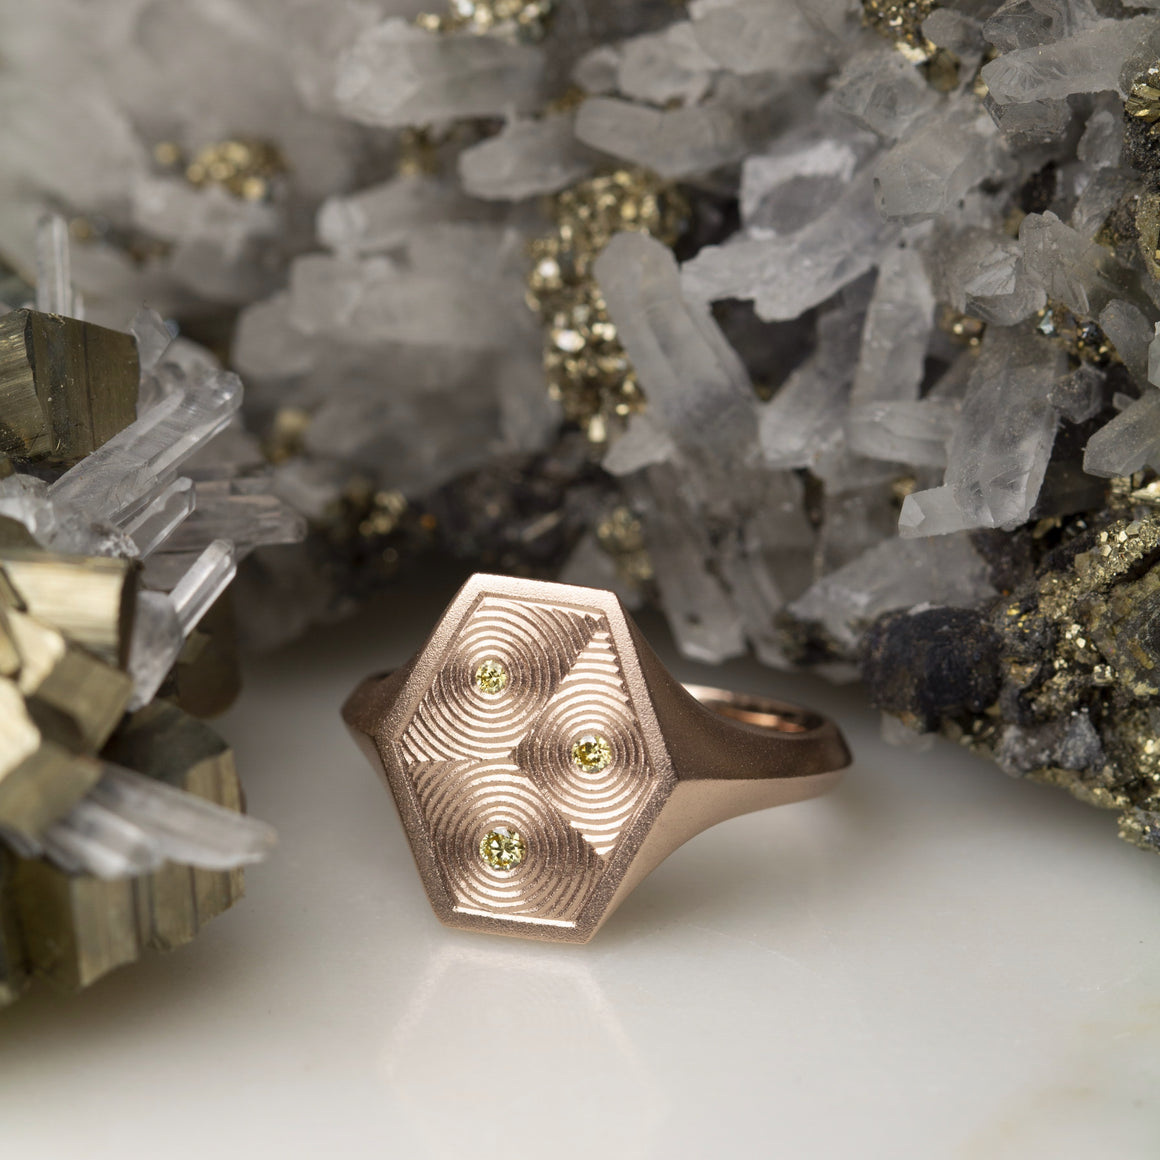 Hex Signet Ring With Canary Yellow Diamonds & Ripple Engraving